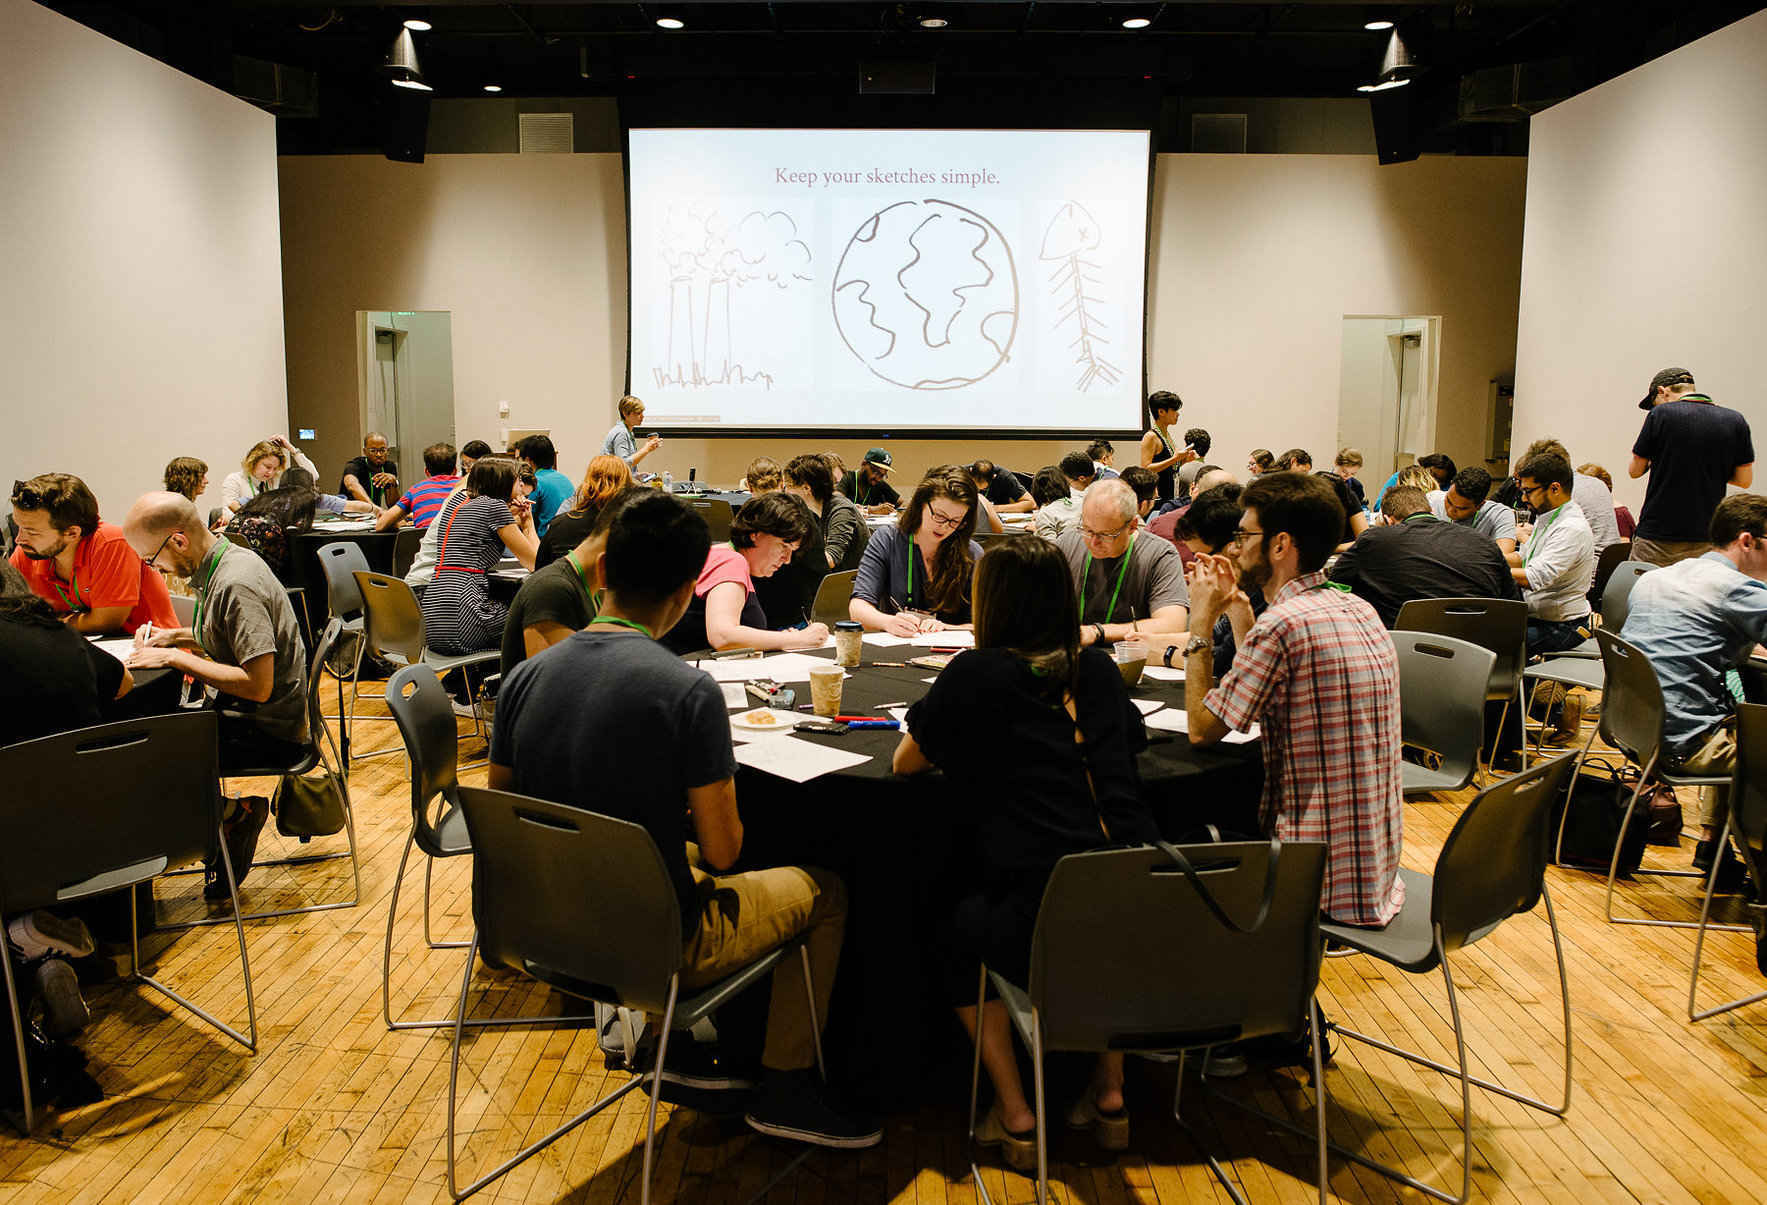 Connect the network strengthening journalism image